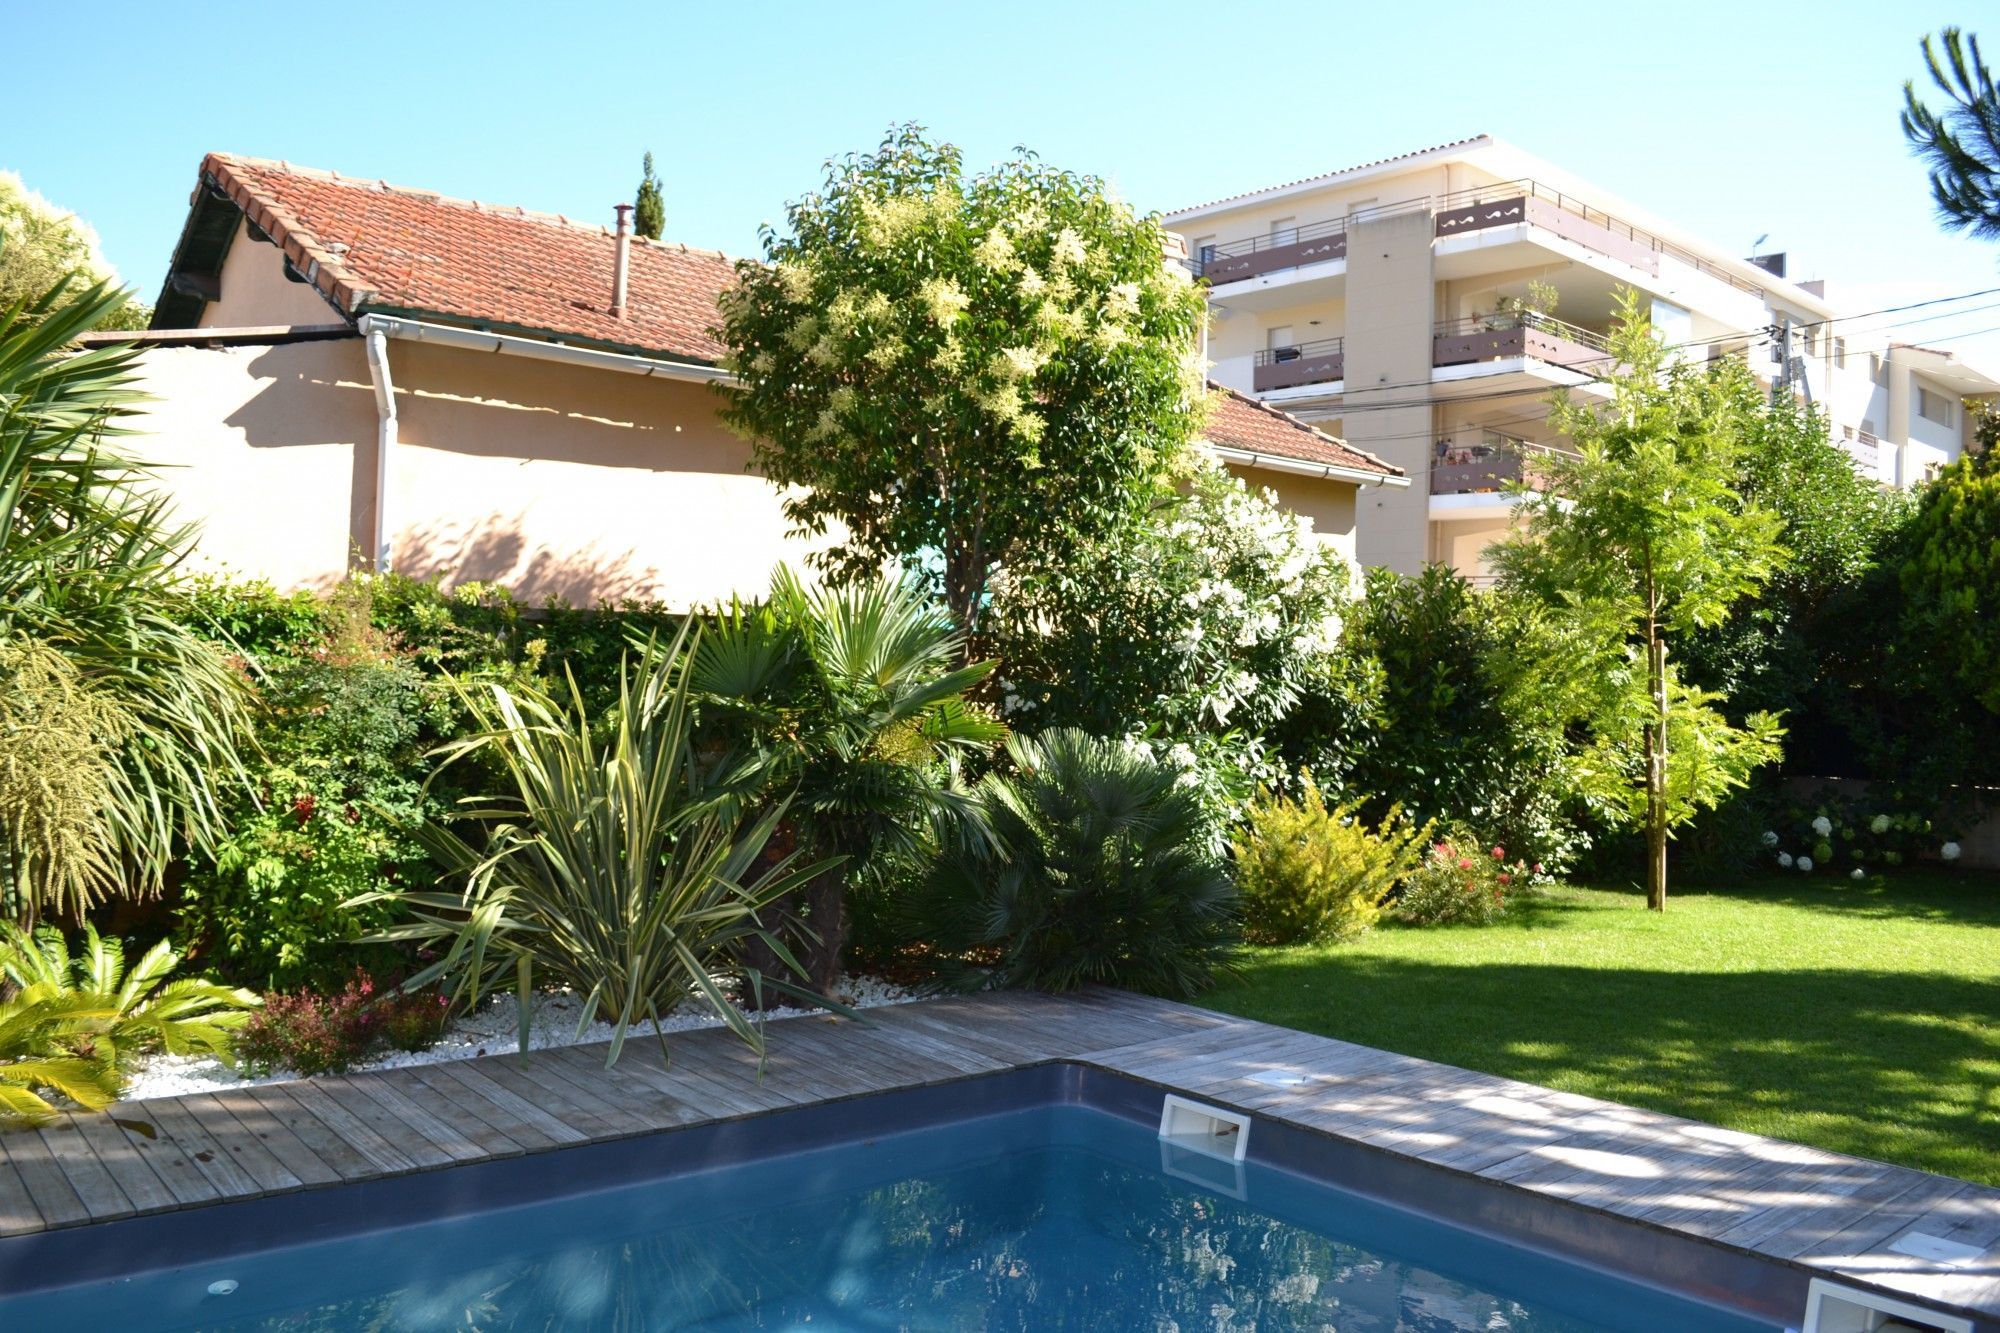 Cr ation d 39 un espace paysager en bord de piscine cr ation for Amenagement jardin piscine